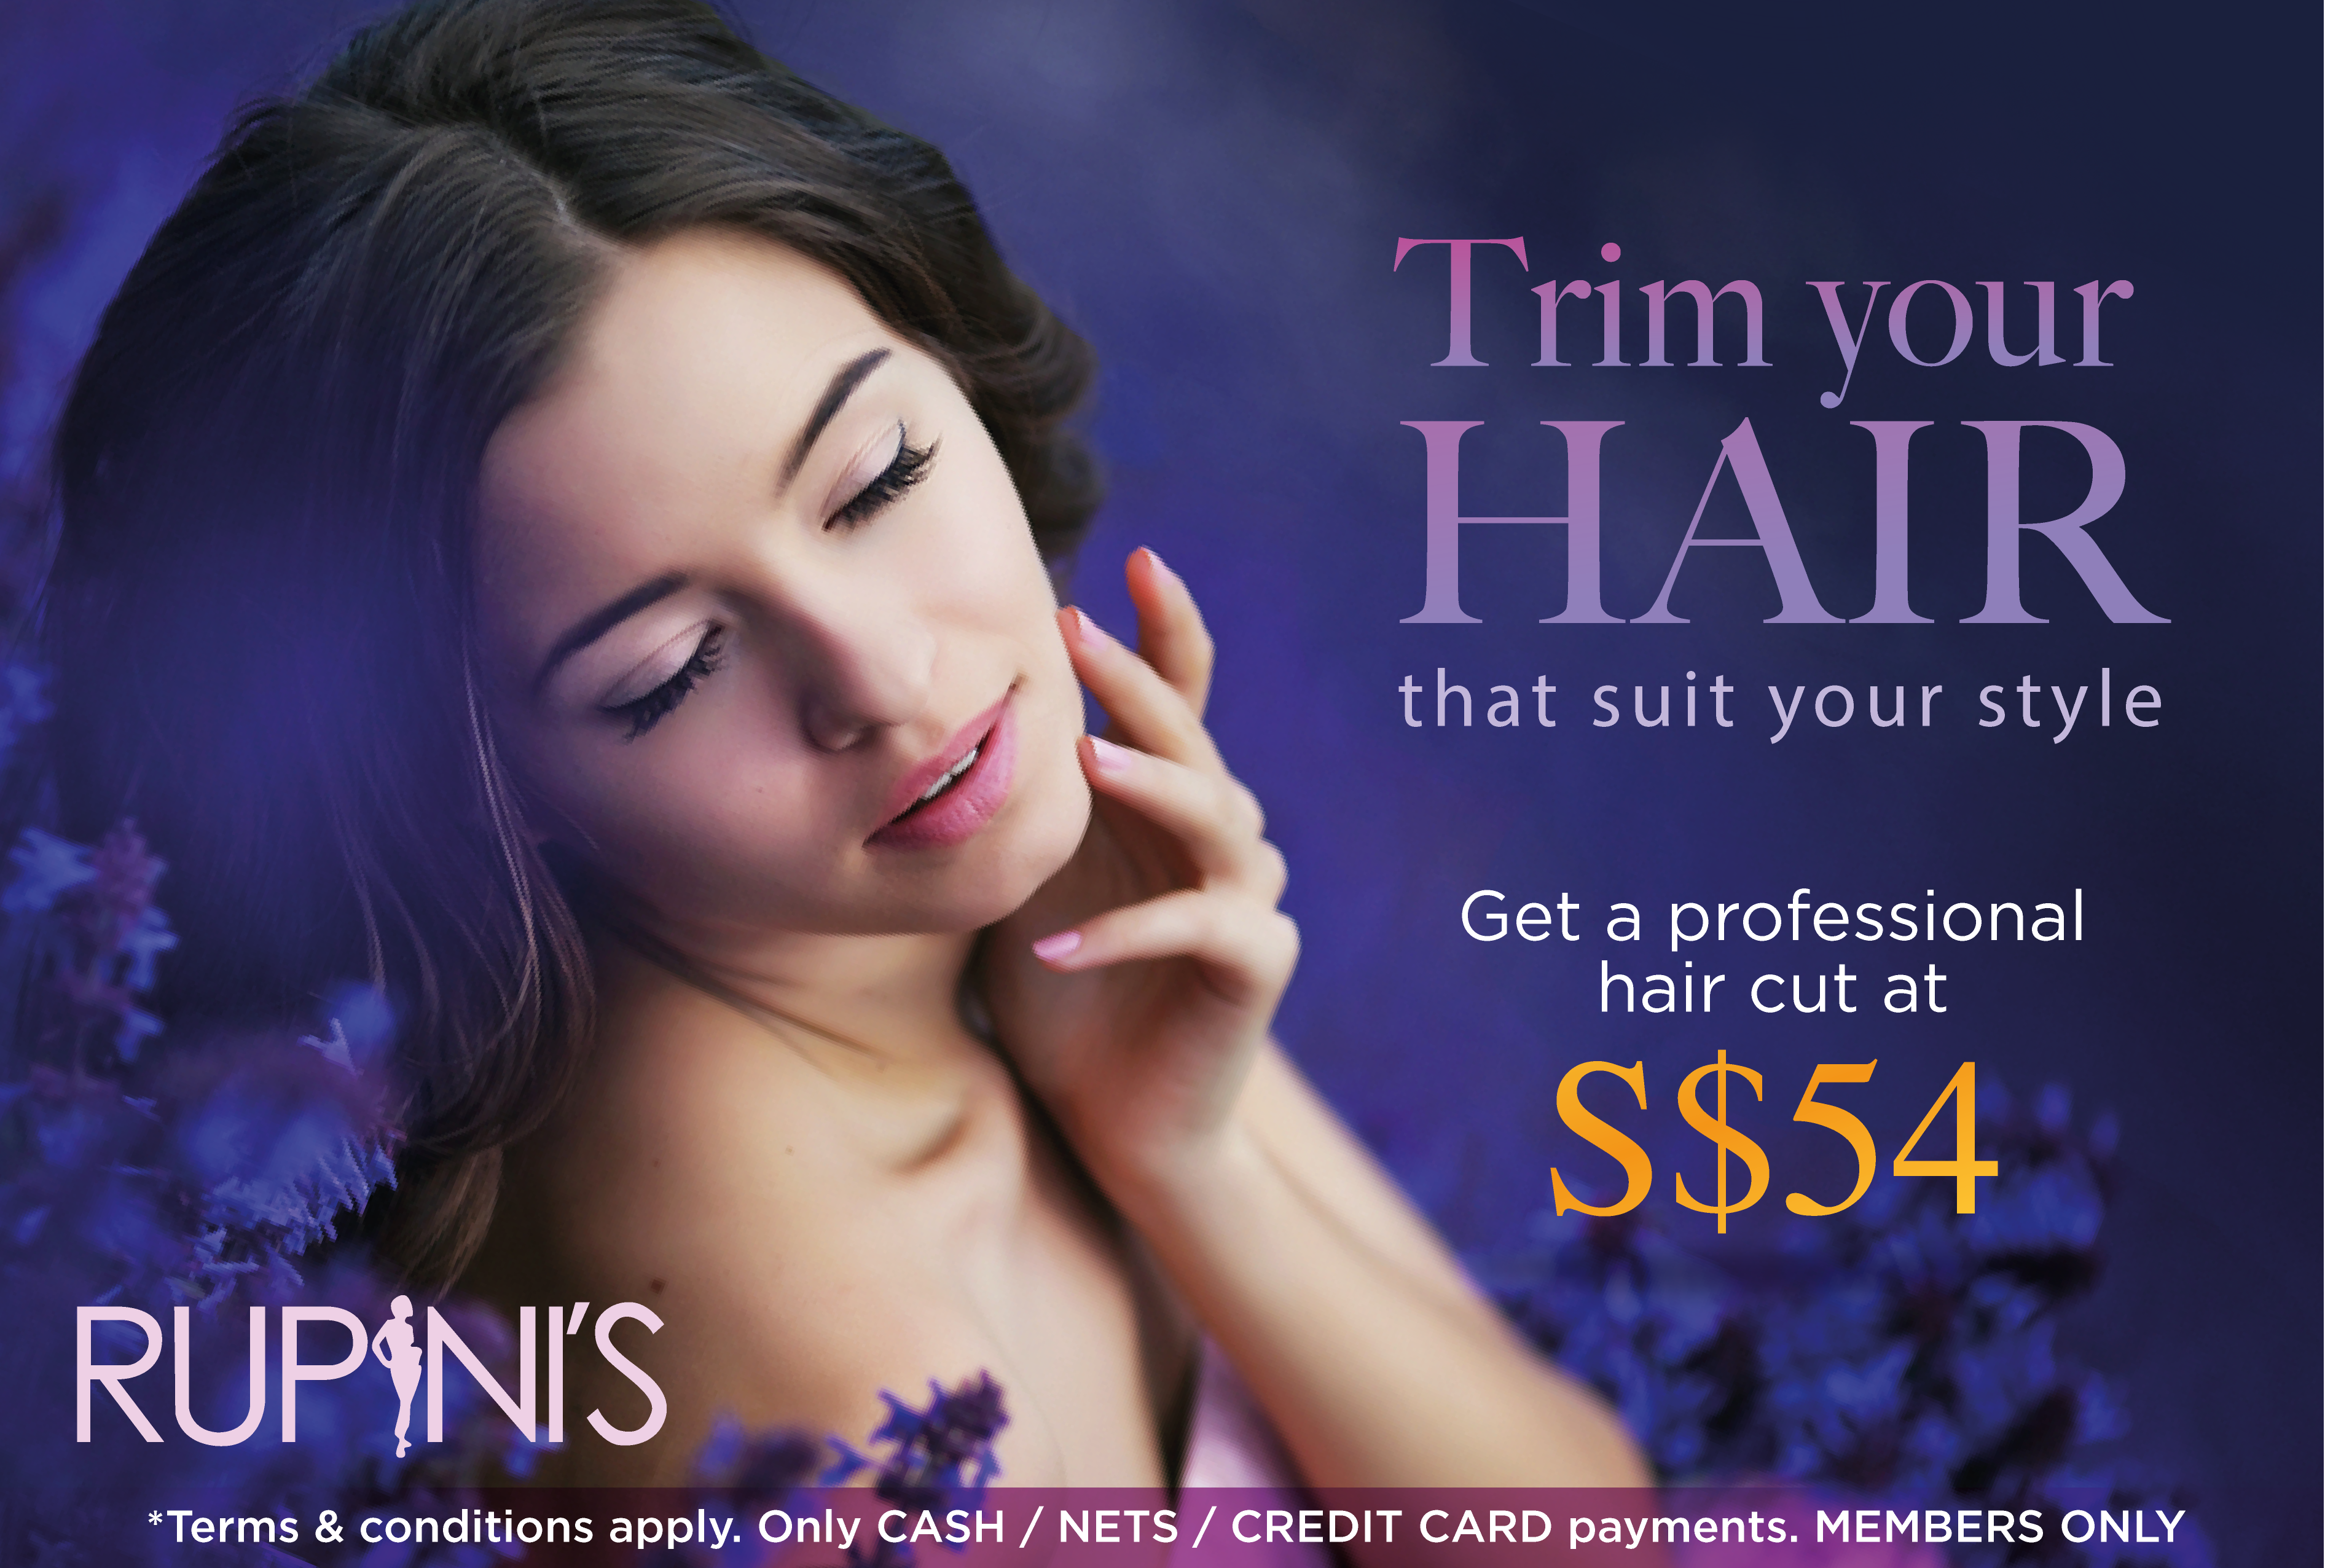 Get A Haircut That Suits Your Style In 2020 Hair Salon Singapore Best Salon Best Face Products